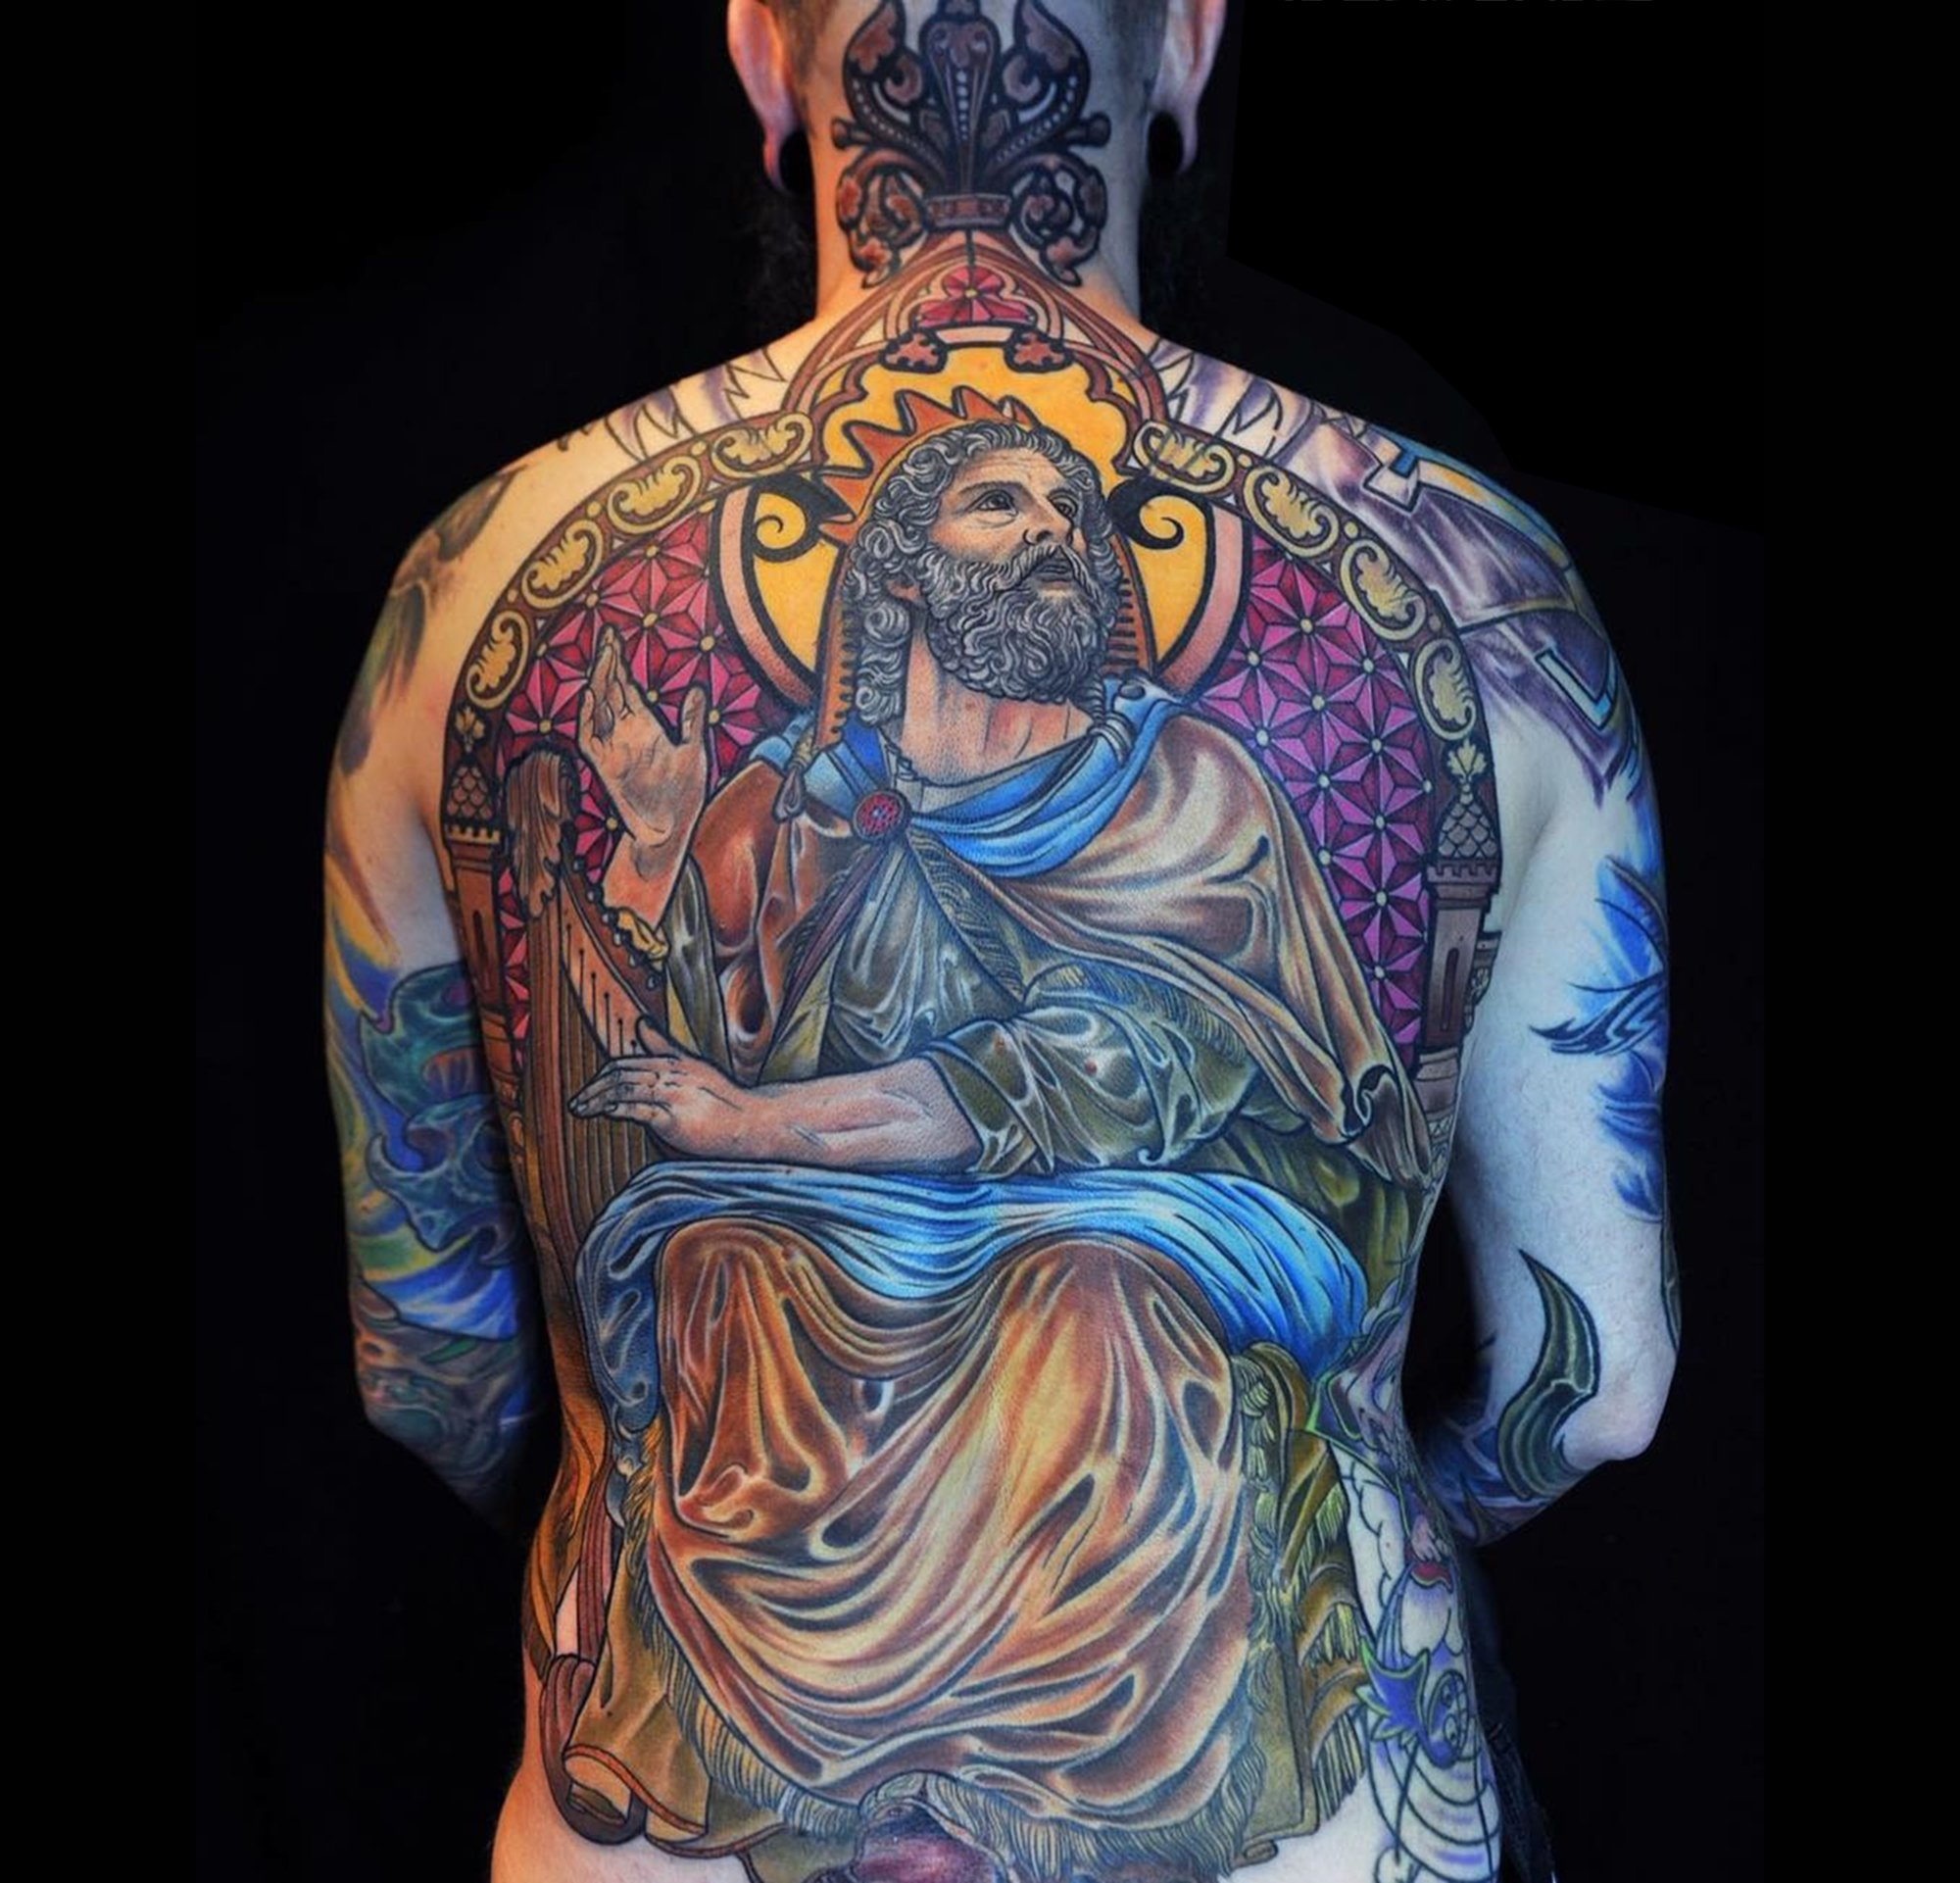 religious, medieval, stainless glass tattoo on back